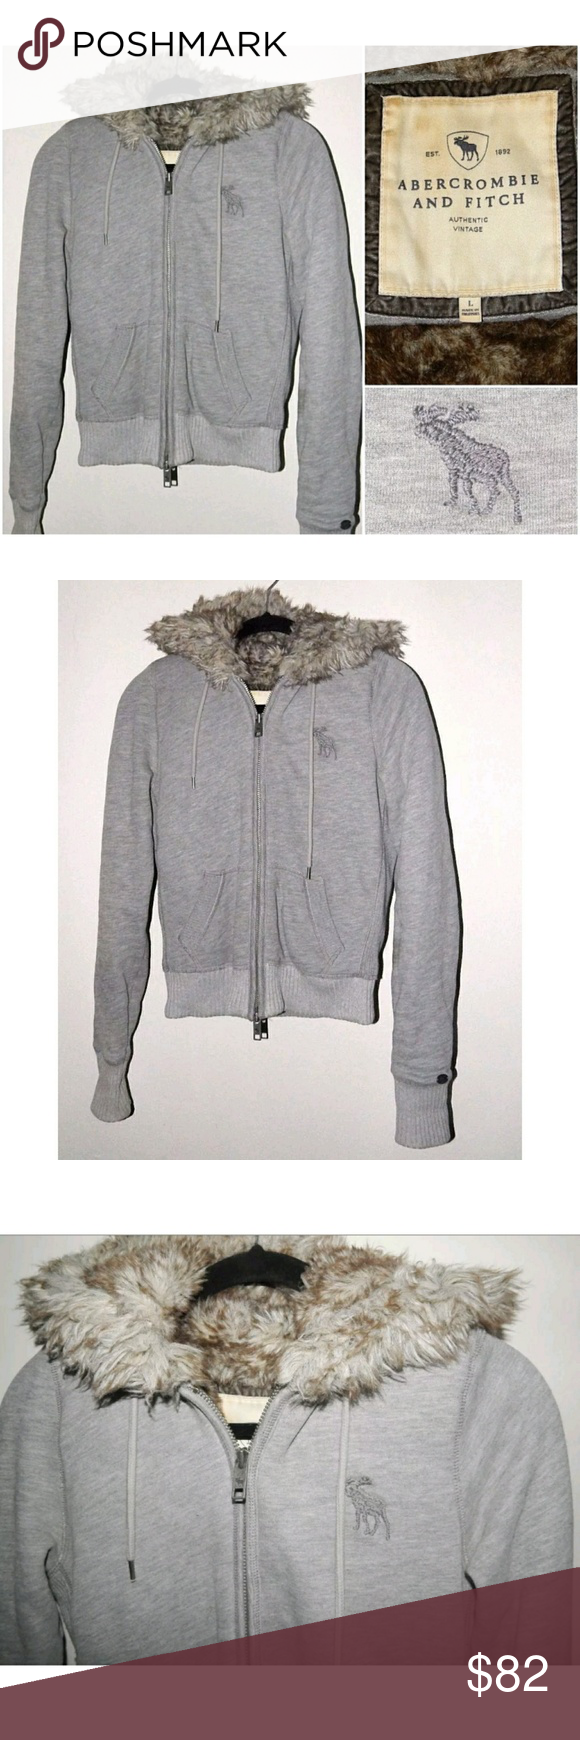 Today Only Price Abercrombie Fitch Faux Fur Abercrombie Fitch Authentic Vintage Hoodie Womens Gra Faux Fur Lined Coat Clothes Design Vintage Hoodies